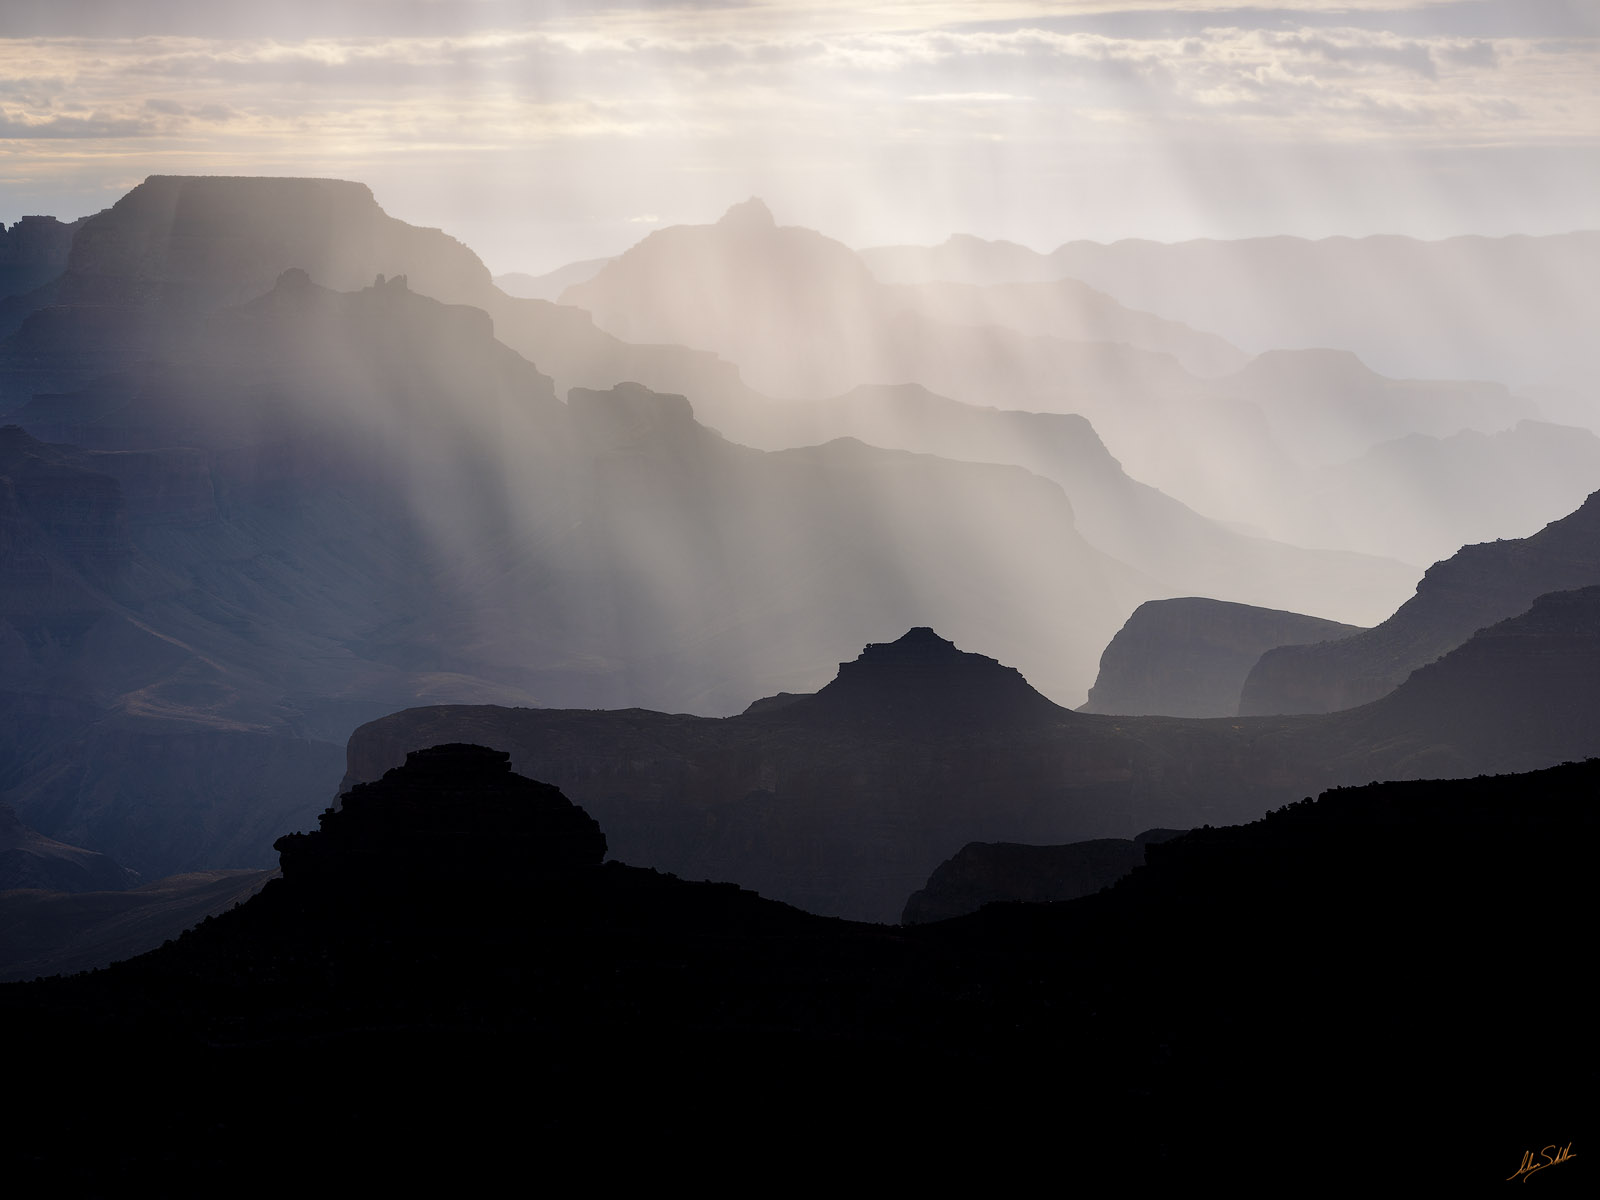 A gentle rain silently falls into Grand Canyon just after sunrise creating a beautiful atmosphere and accentuating the many ridges...